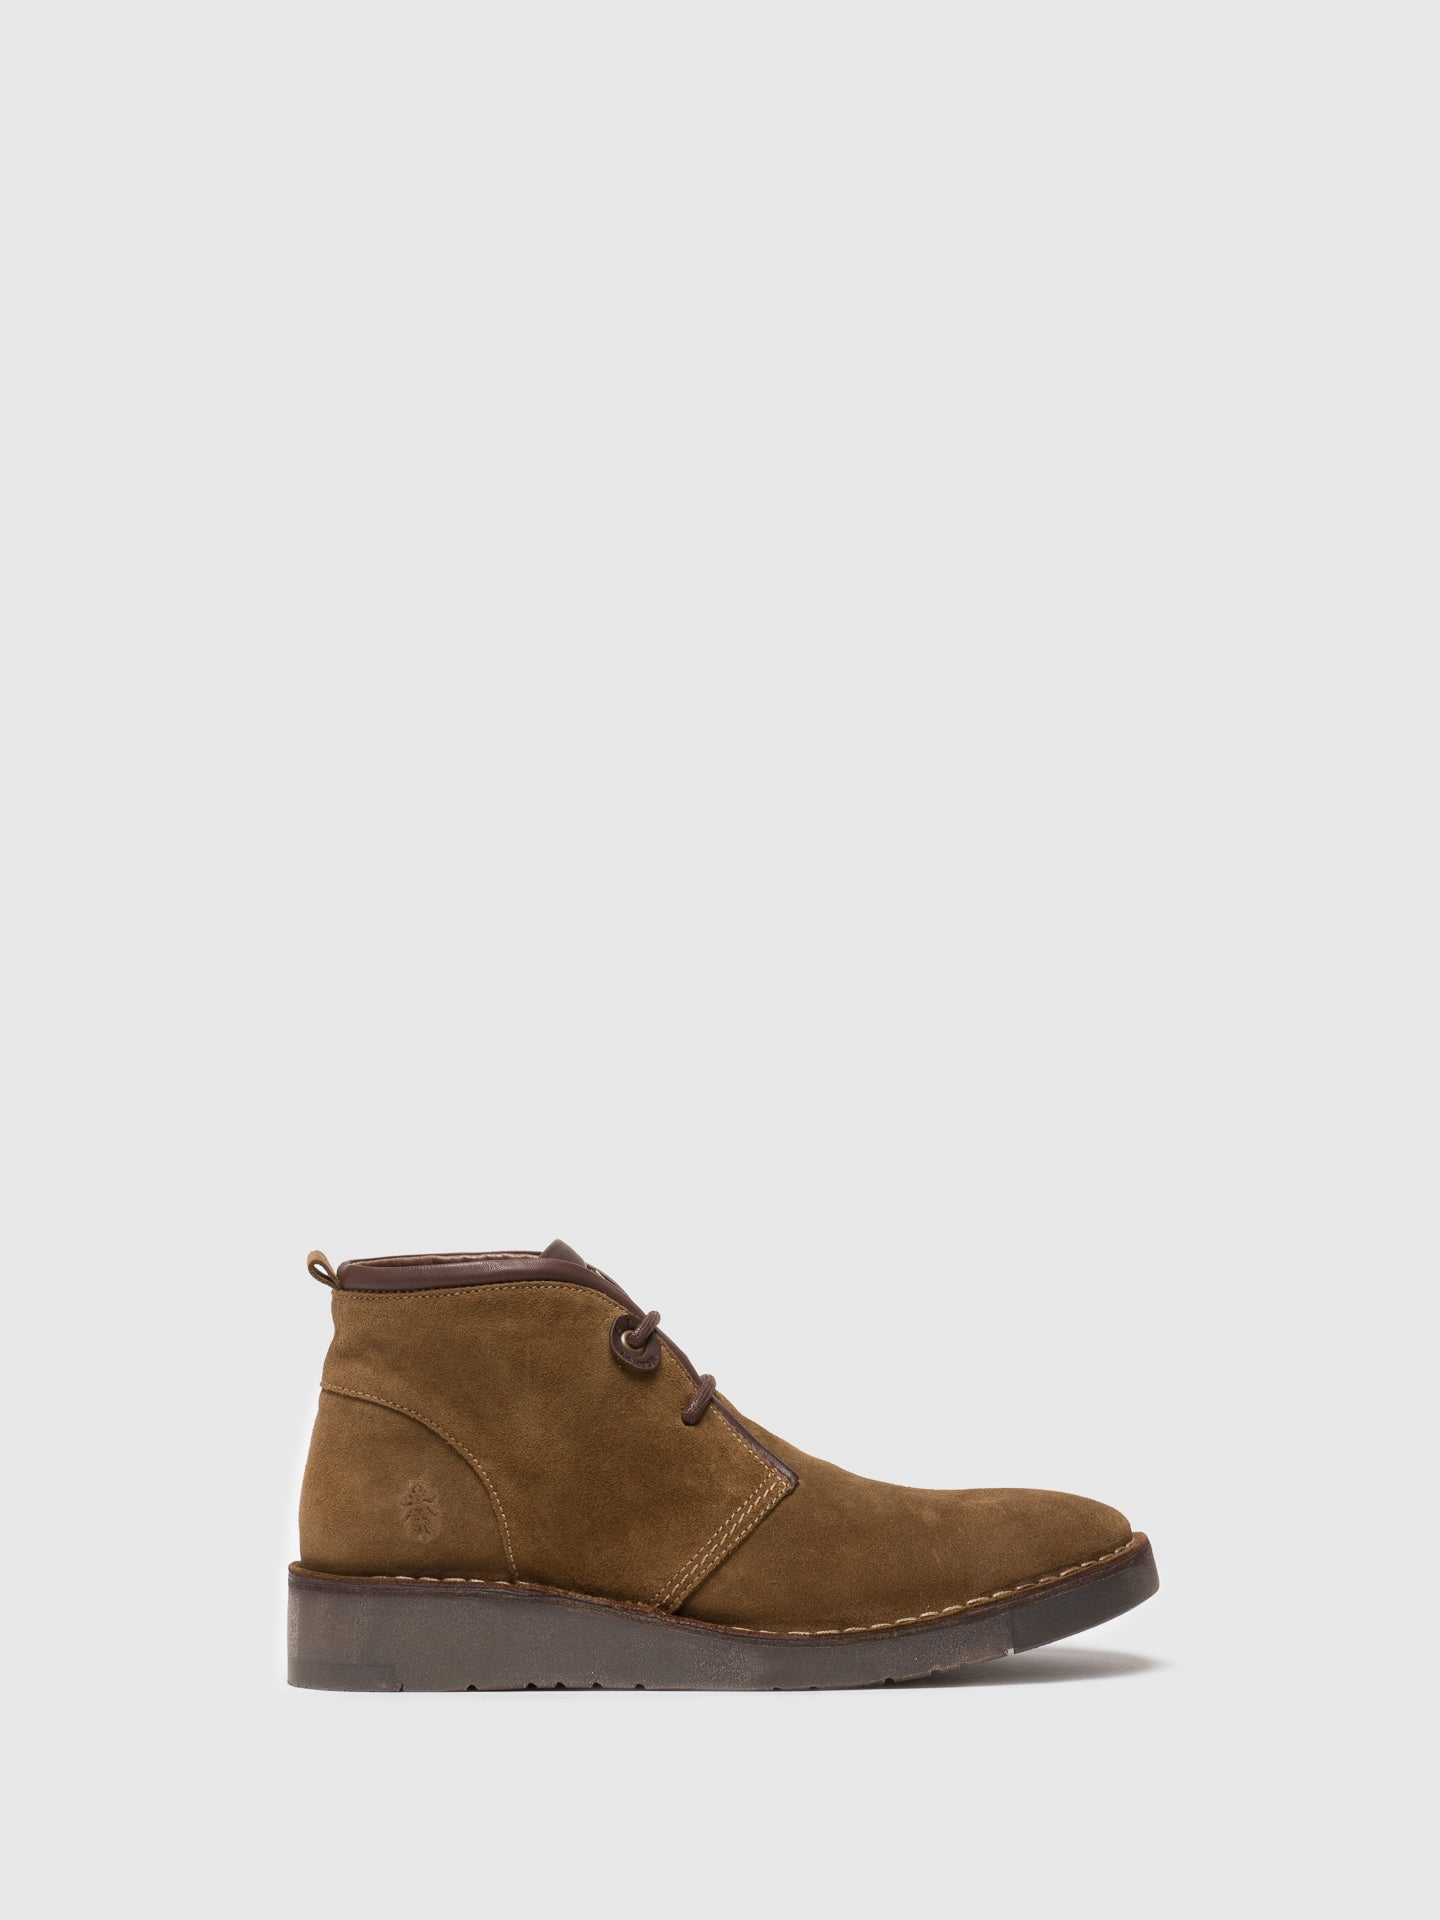 Fly London Botines con Cordones en color Taupe